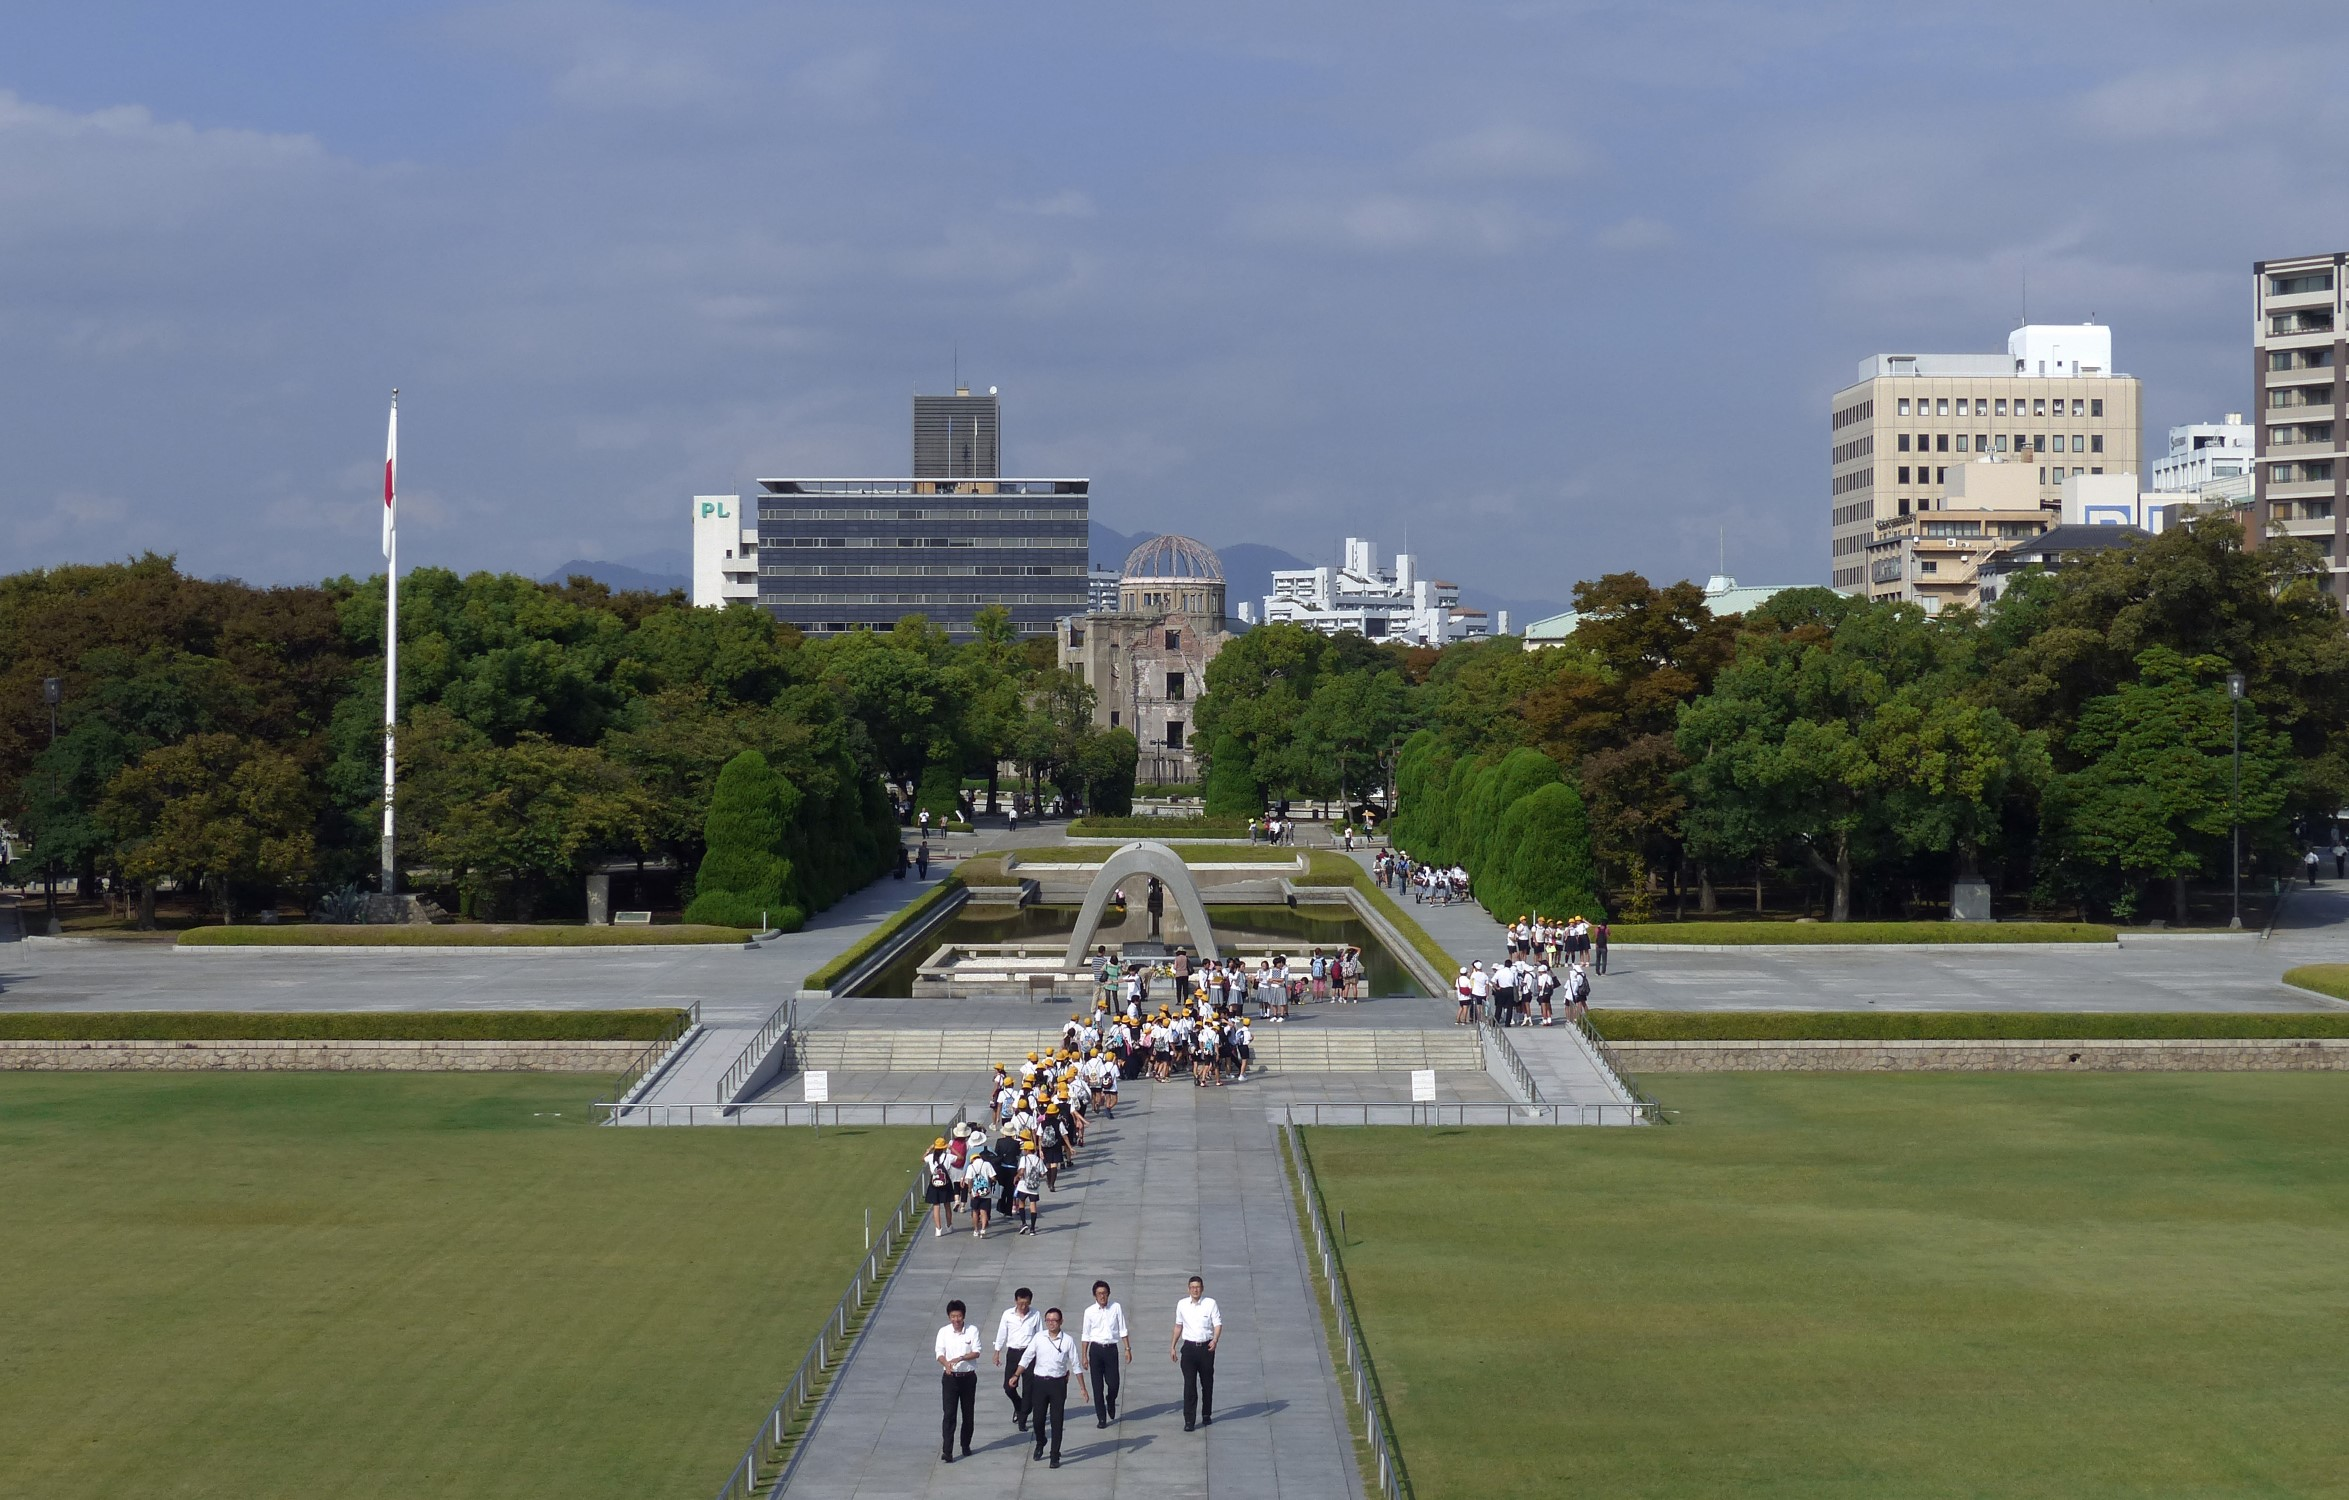 View of the View of the Hiroshima Peace Park